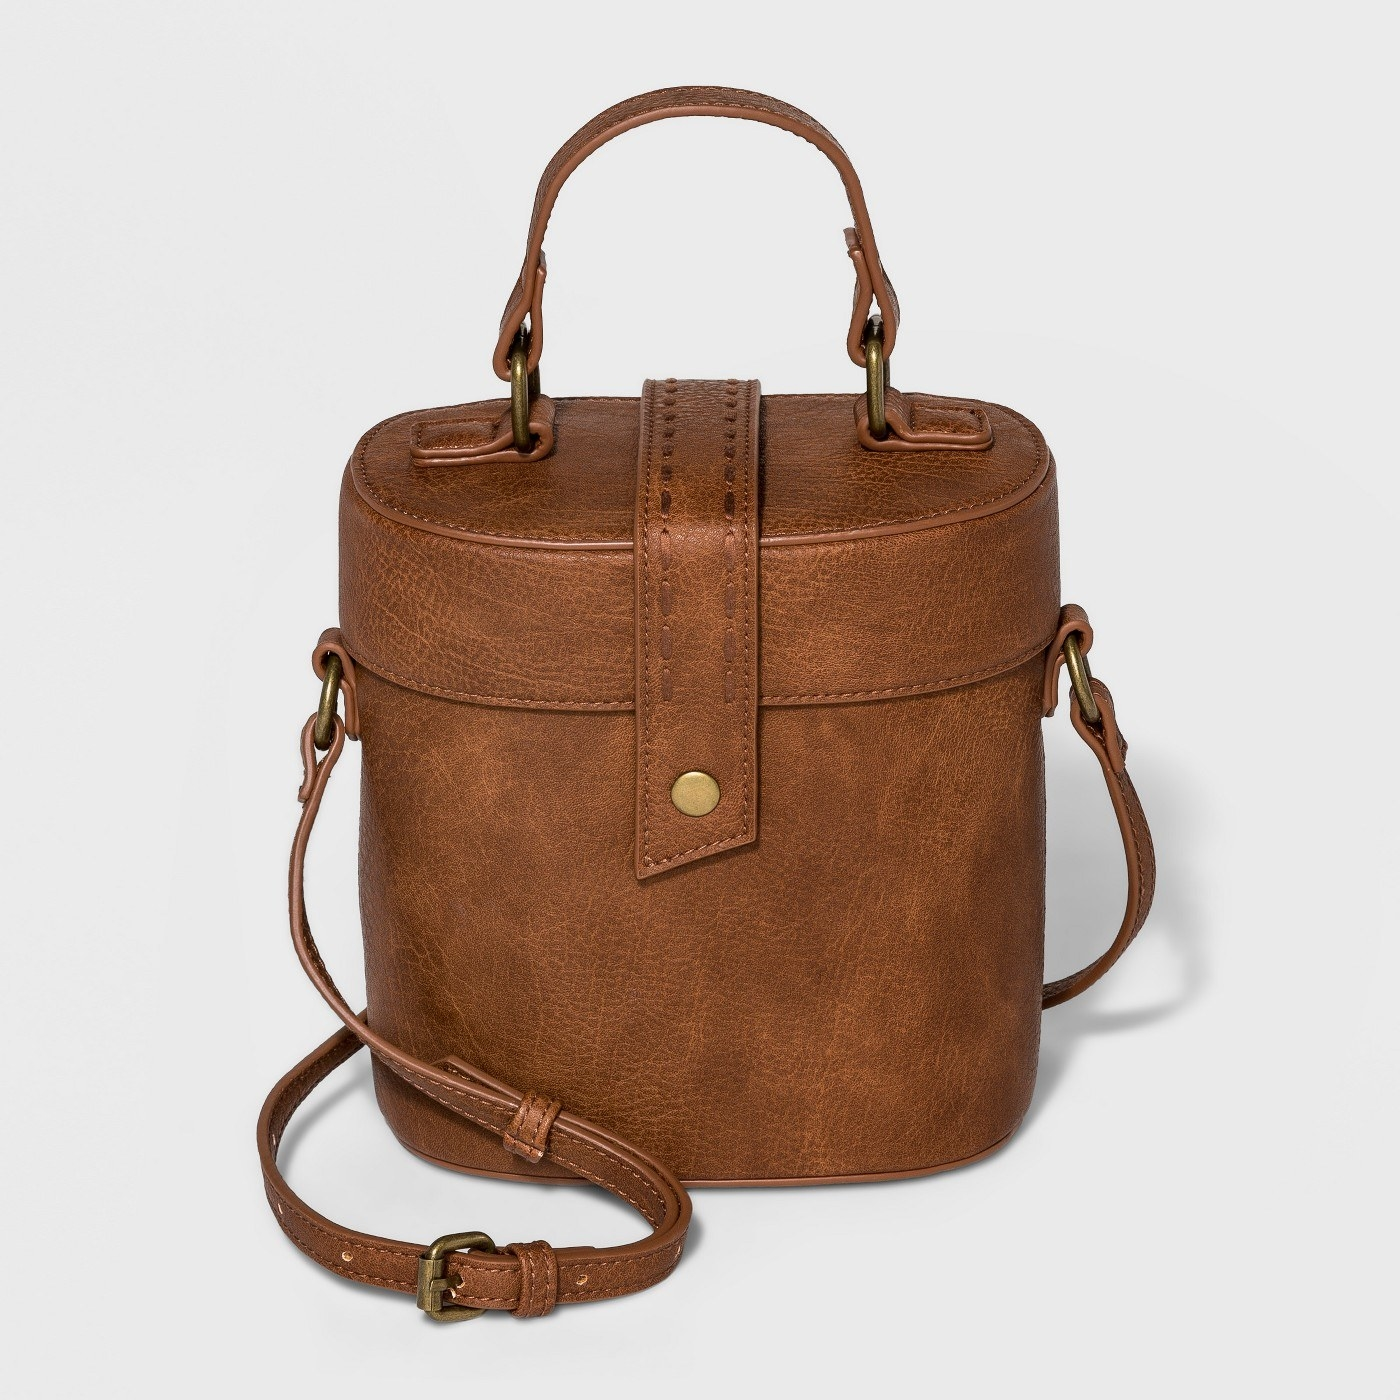 21 Of The Best Places To Buy Handbags And Purses Online In 2018 6026c6e72e795